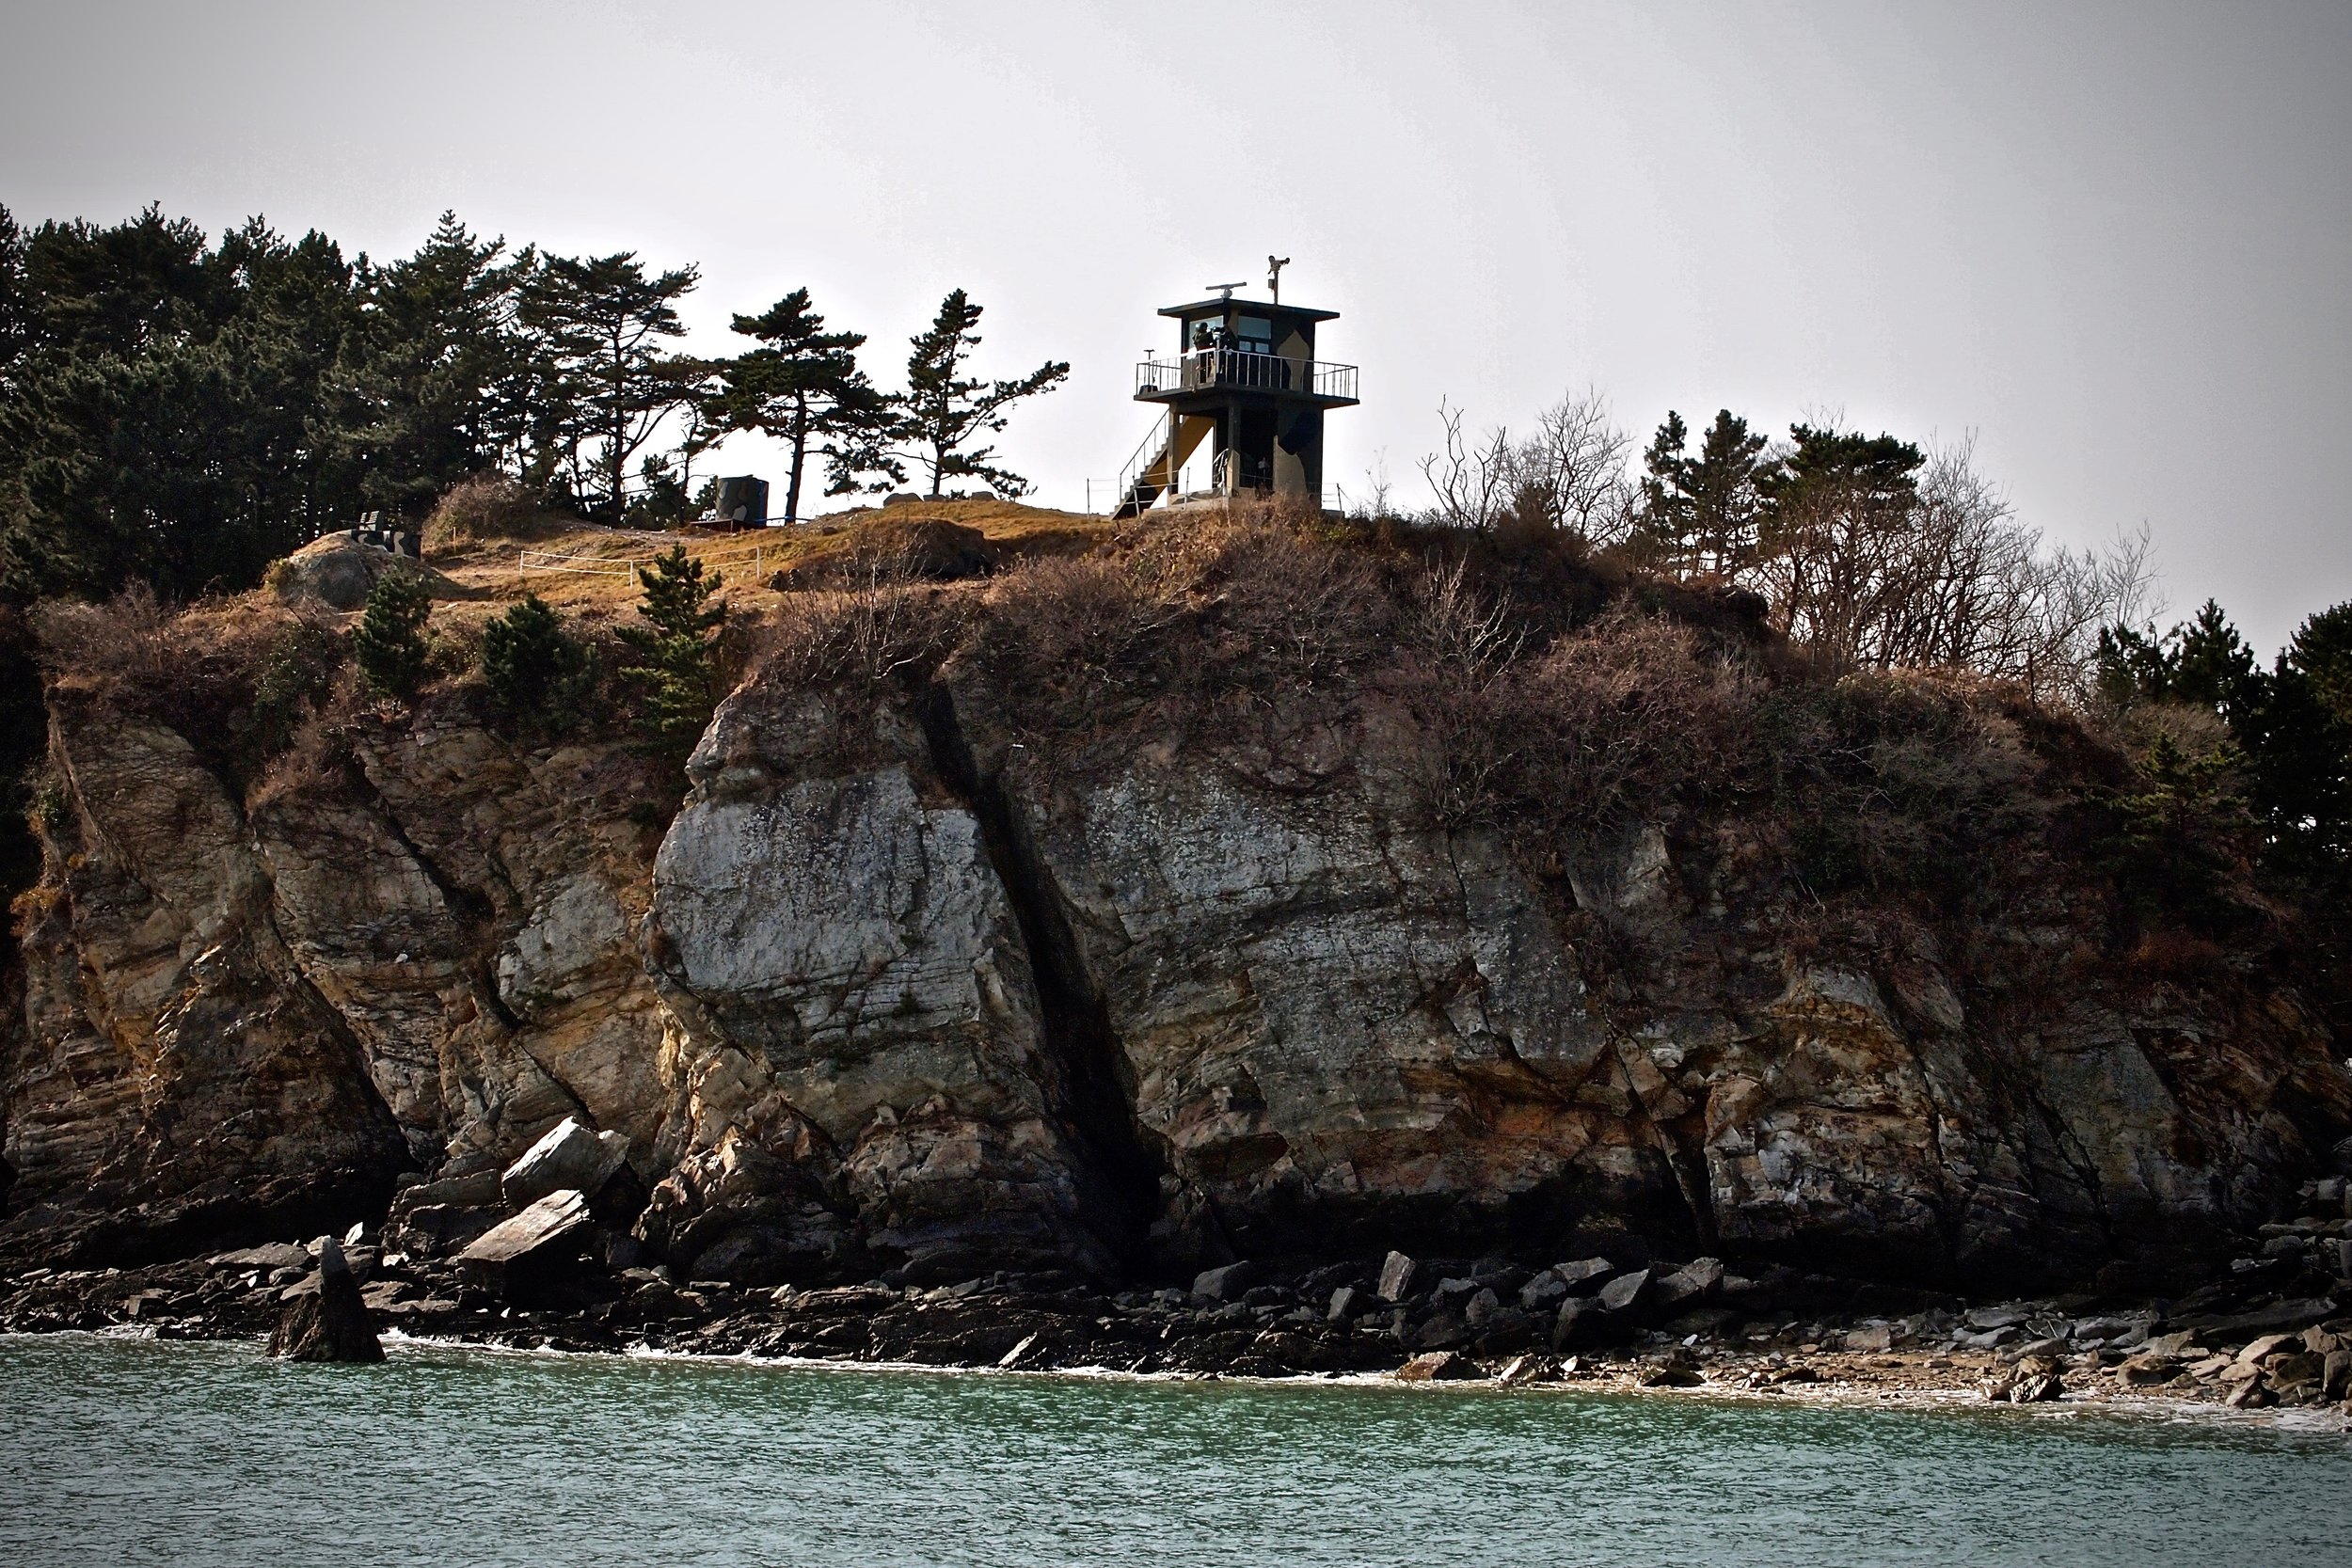 Military guard tower on South Korea controlled Yeonpyeong Island, close to the mainland of North Korea. (C) Remko Tanis